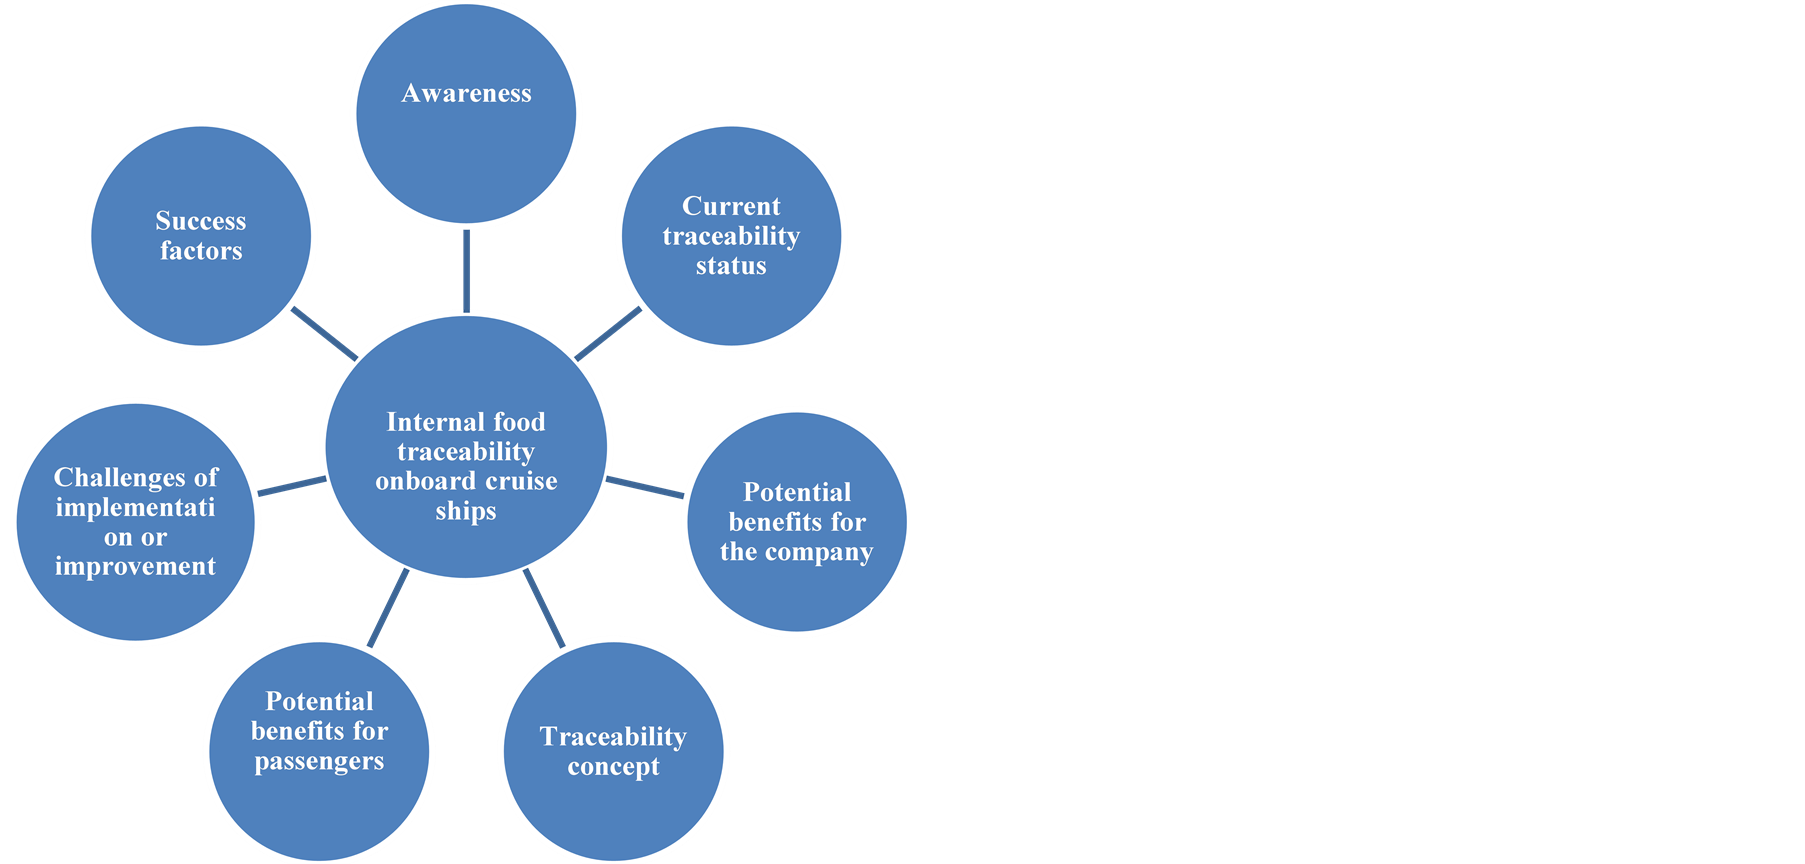 food safety traceability systems in the maritime catering logistics